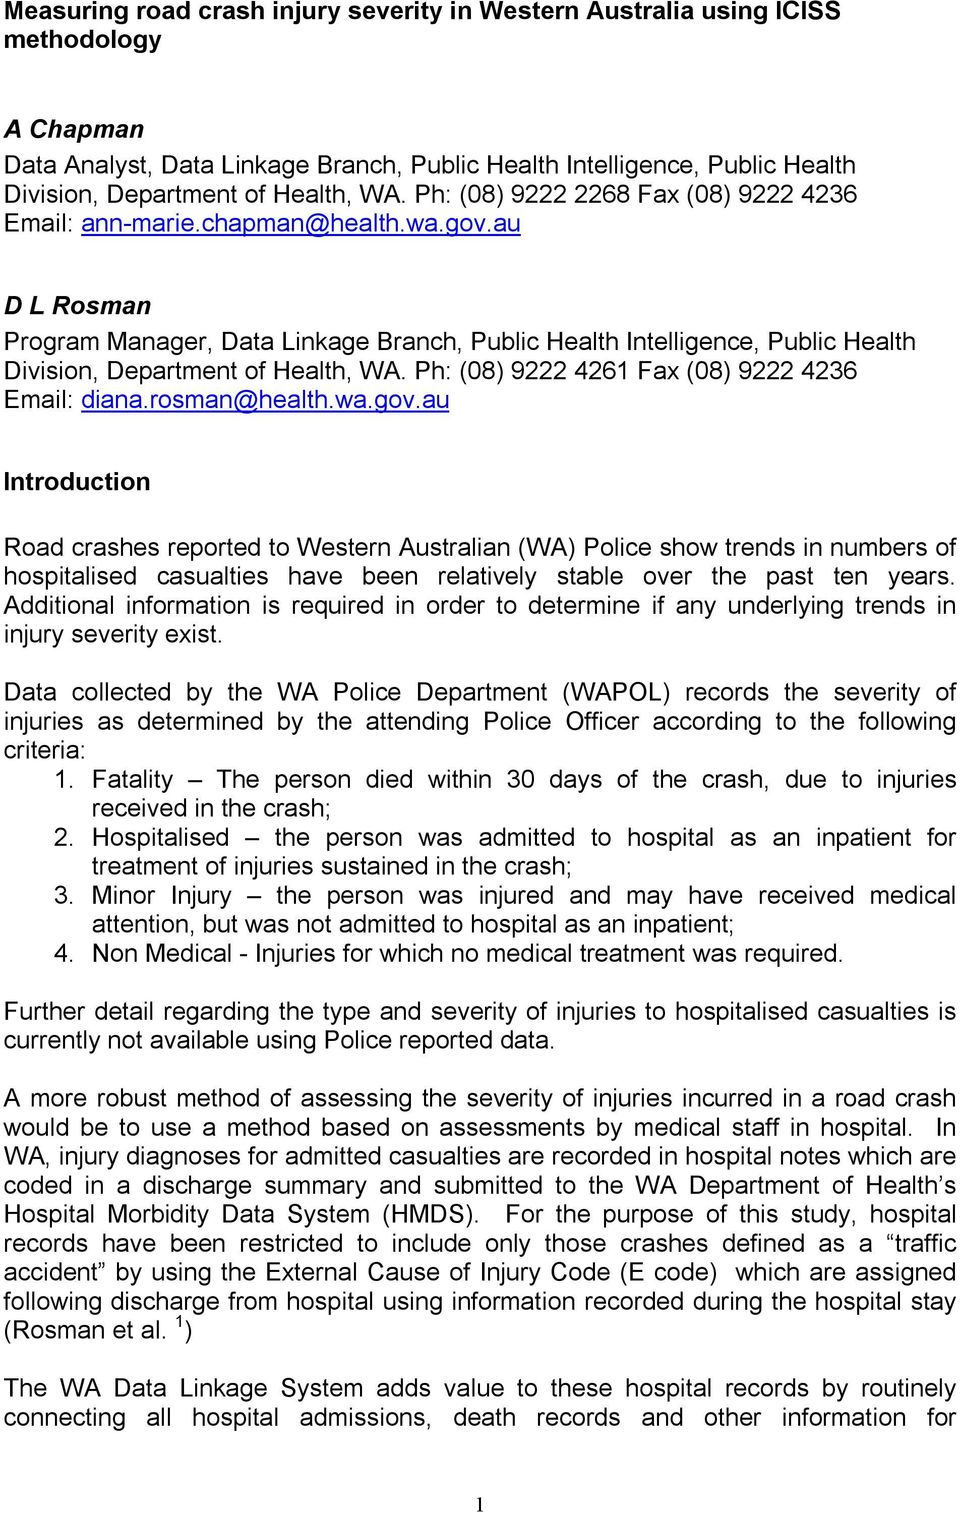 au D L Rosman Program Manager, Data Linkage Branch, Public Health Intelligence, Public Health Division, Department of Health, WA. Ph: (08) 9222 4261 Fax (08) 9222 4236 Email: diana.rosman@health.wa.